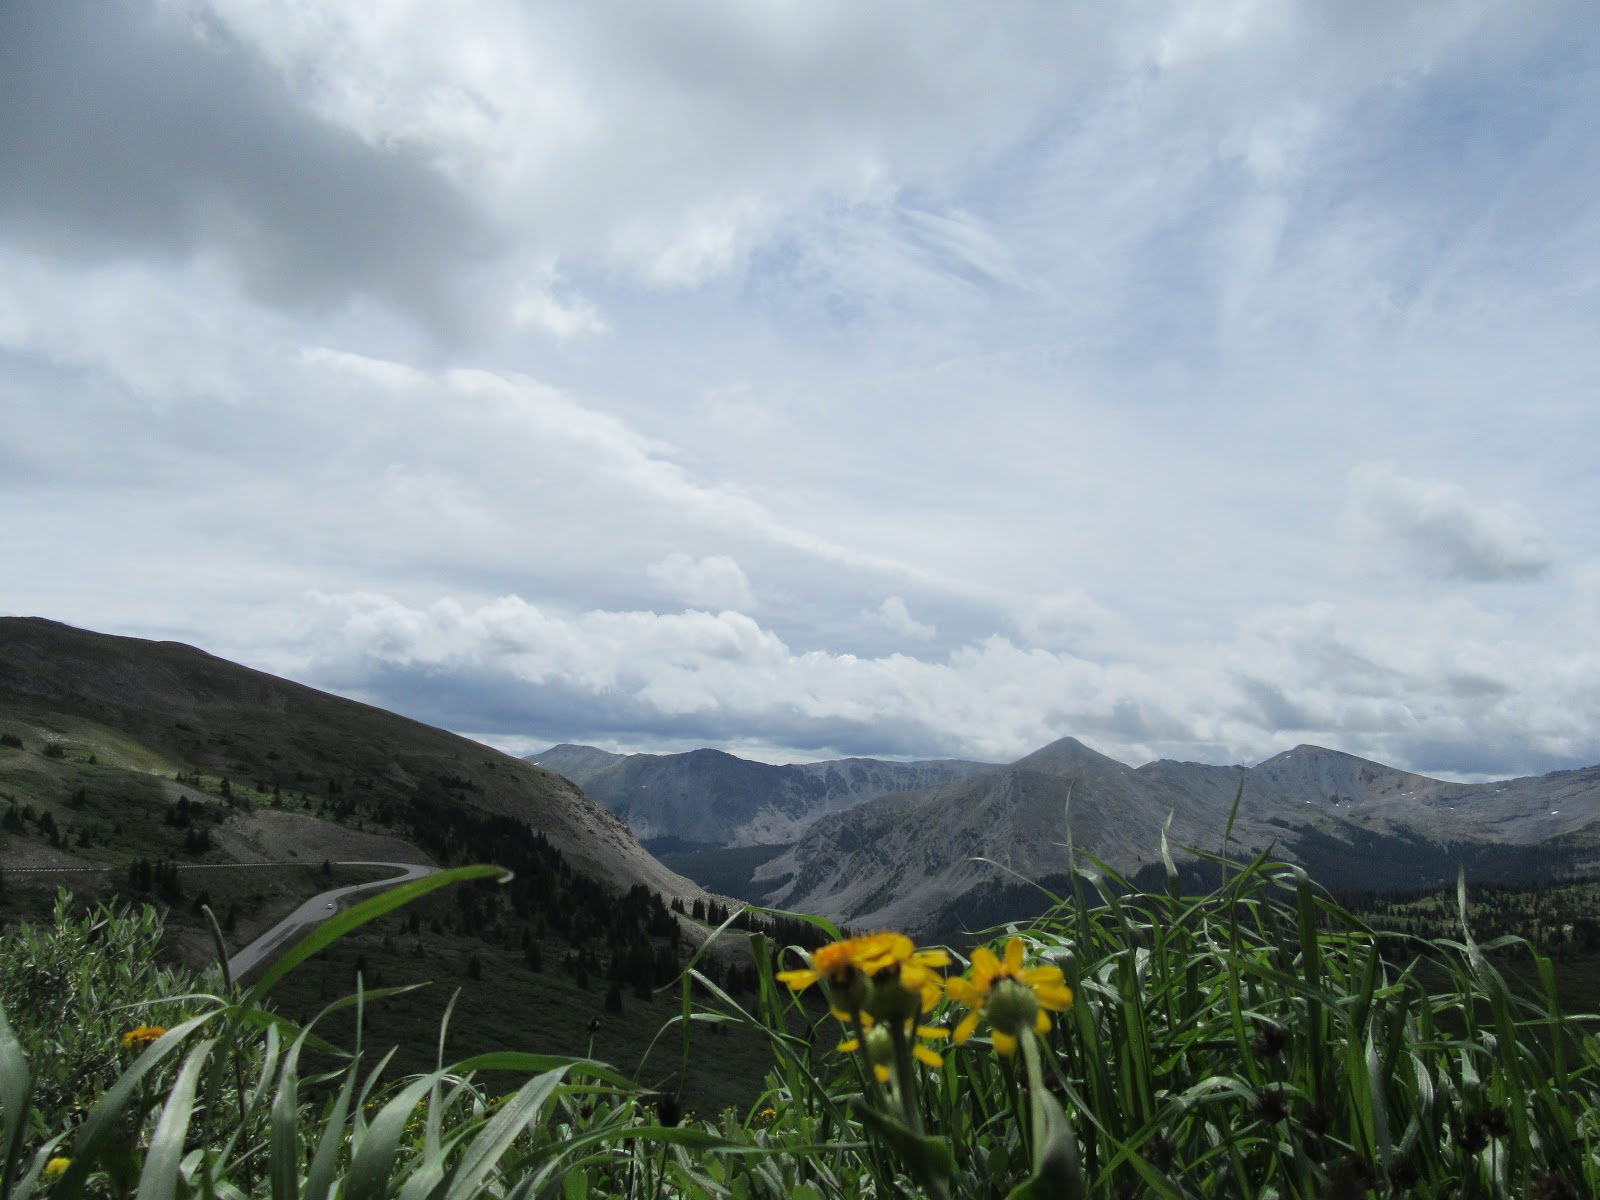 Bicycling Cottonwood Pass - view past flowers to mountains at the top